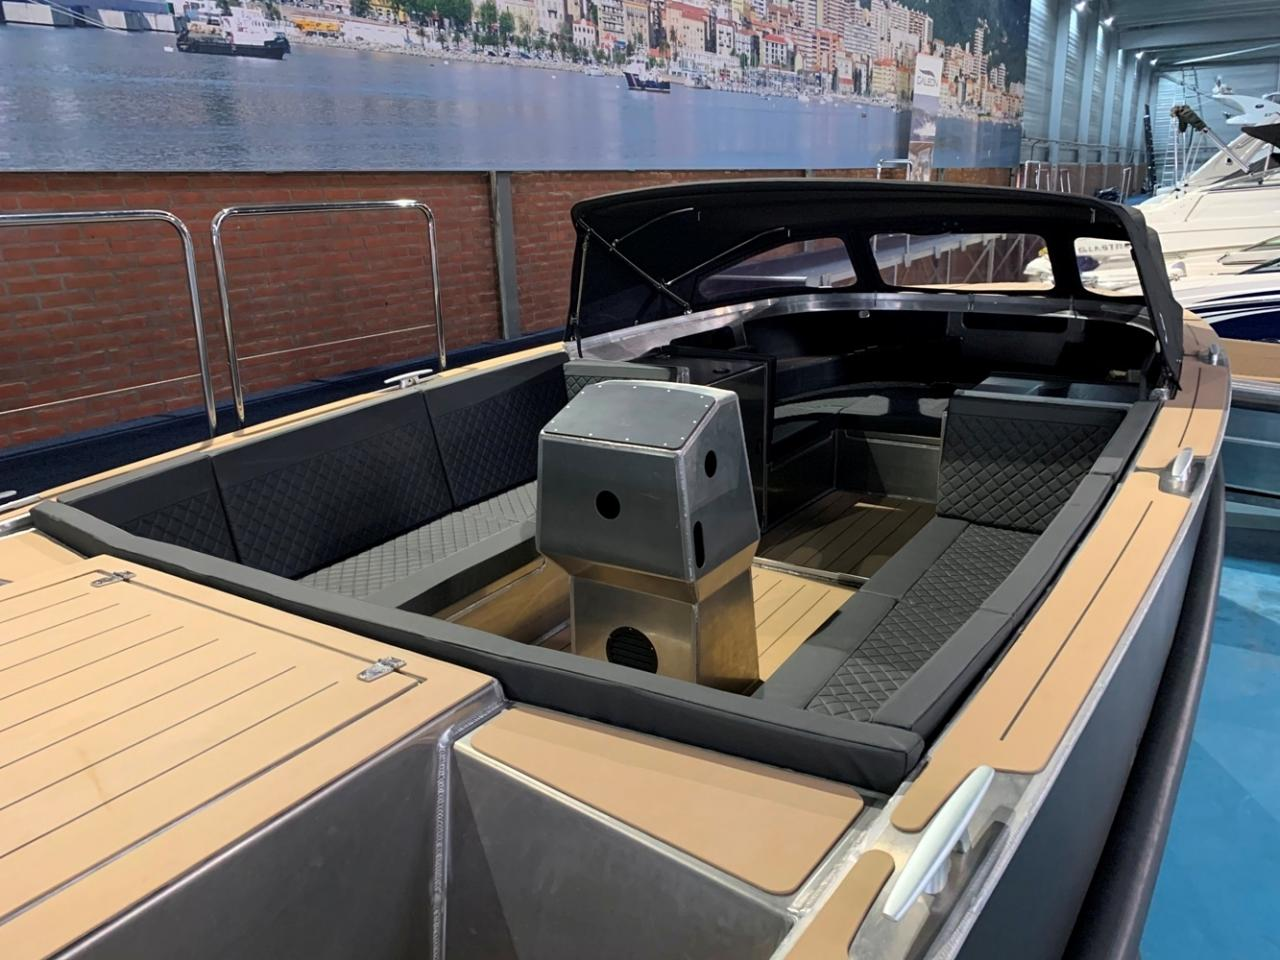 VanVossen Tender 888 sport met Honda 150 pk motor full options! 2